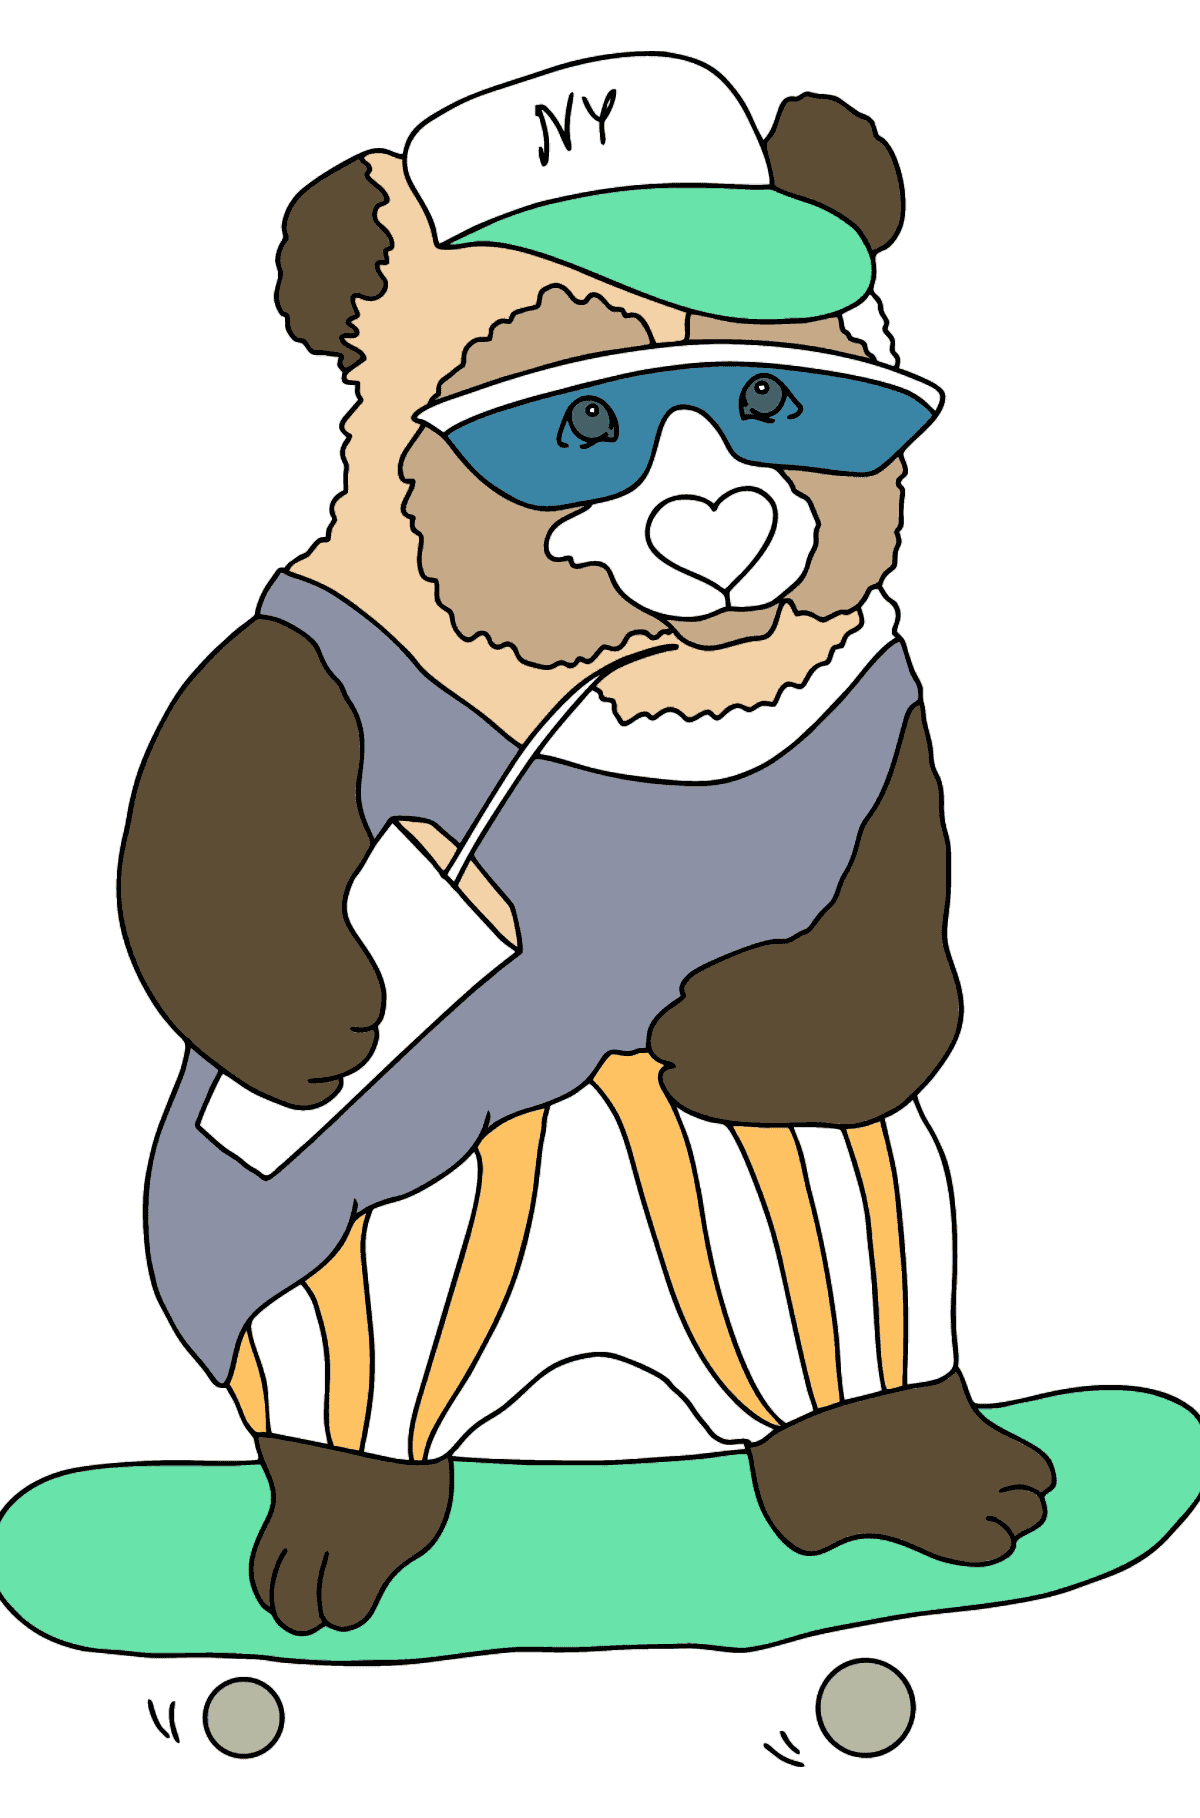 Coloring Page - A Panda in Sunglasses - Coloring Pages for Kids